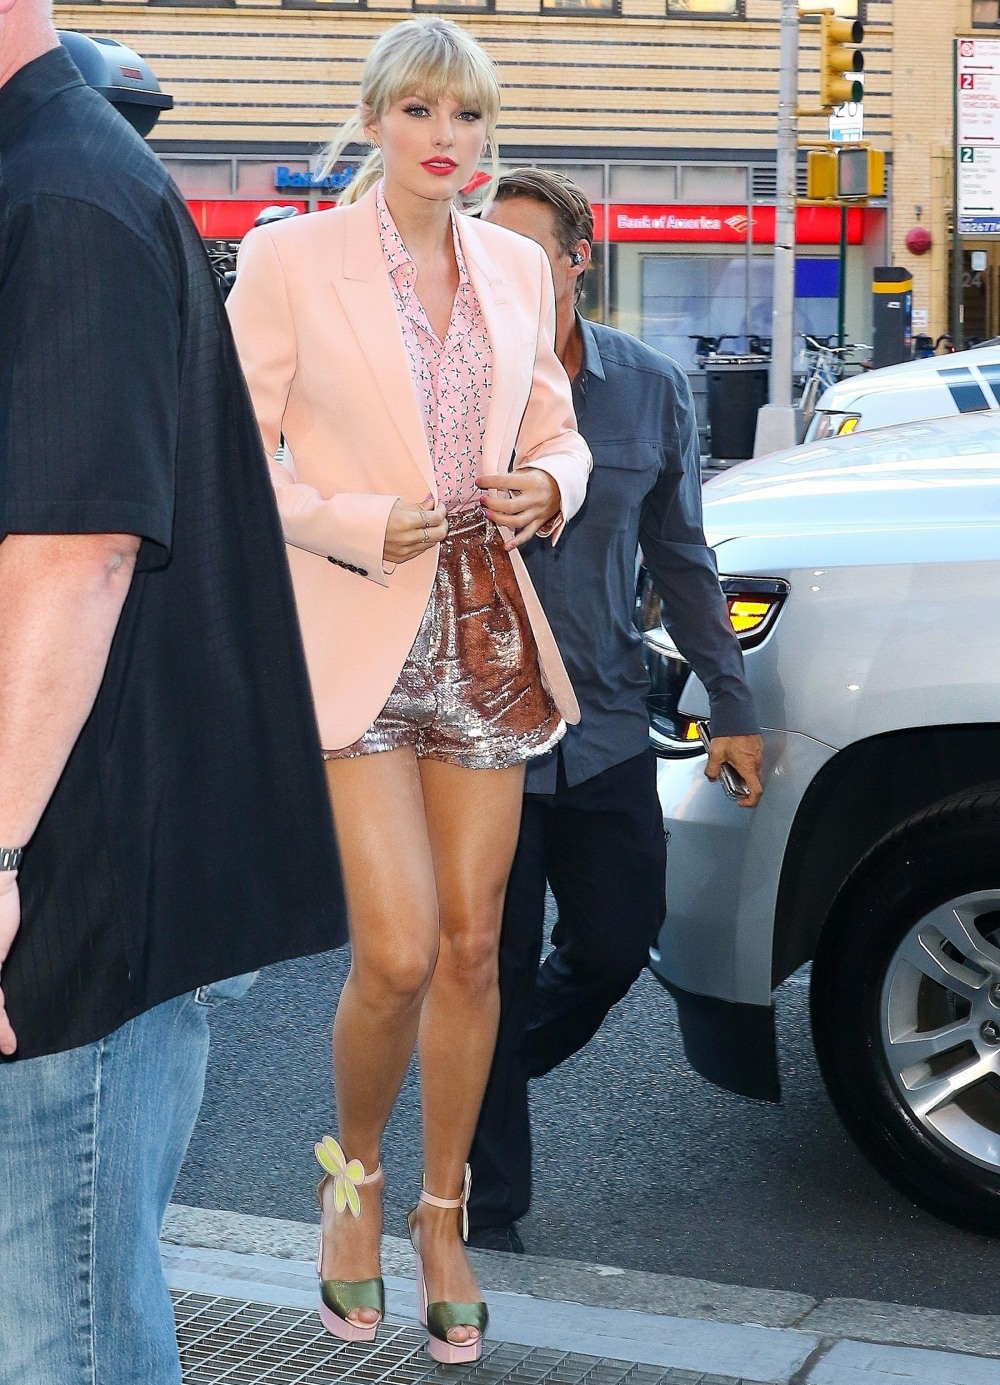 Taylor Swift shows off her legs as she leaves her apartment in New York